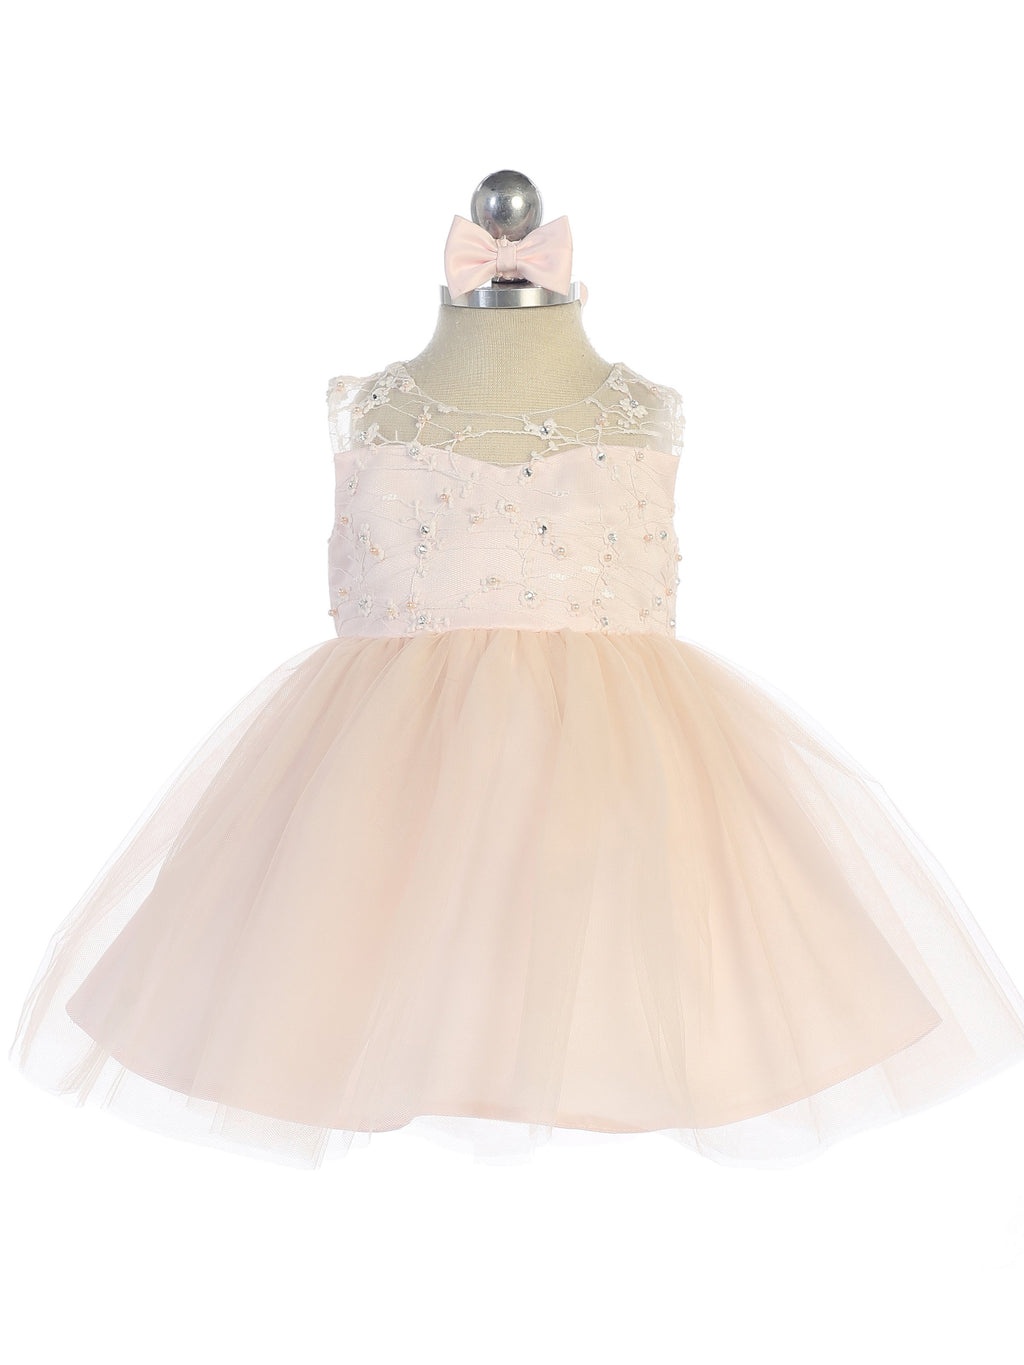 Blush Illusion Neckline Dress with Heart Keyhole Back and Tulle Skirt